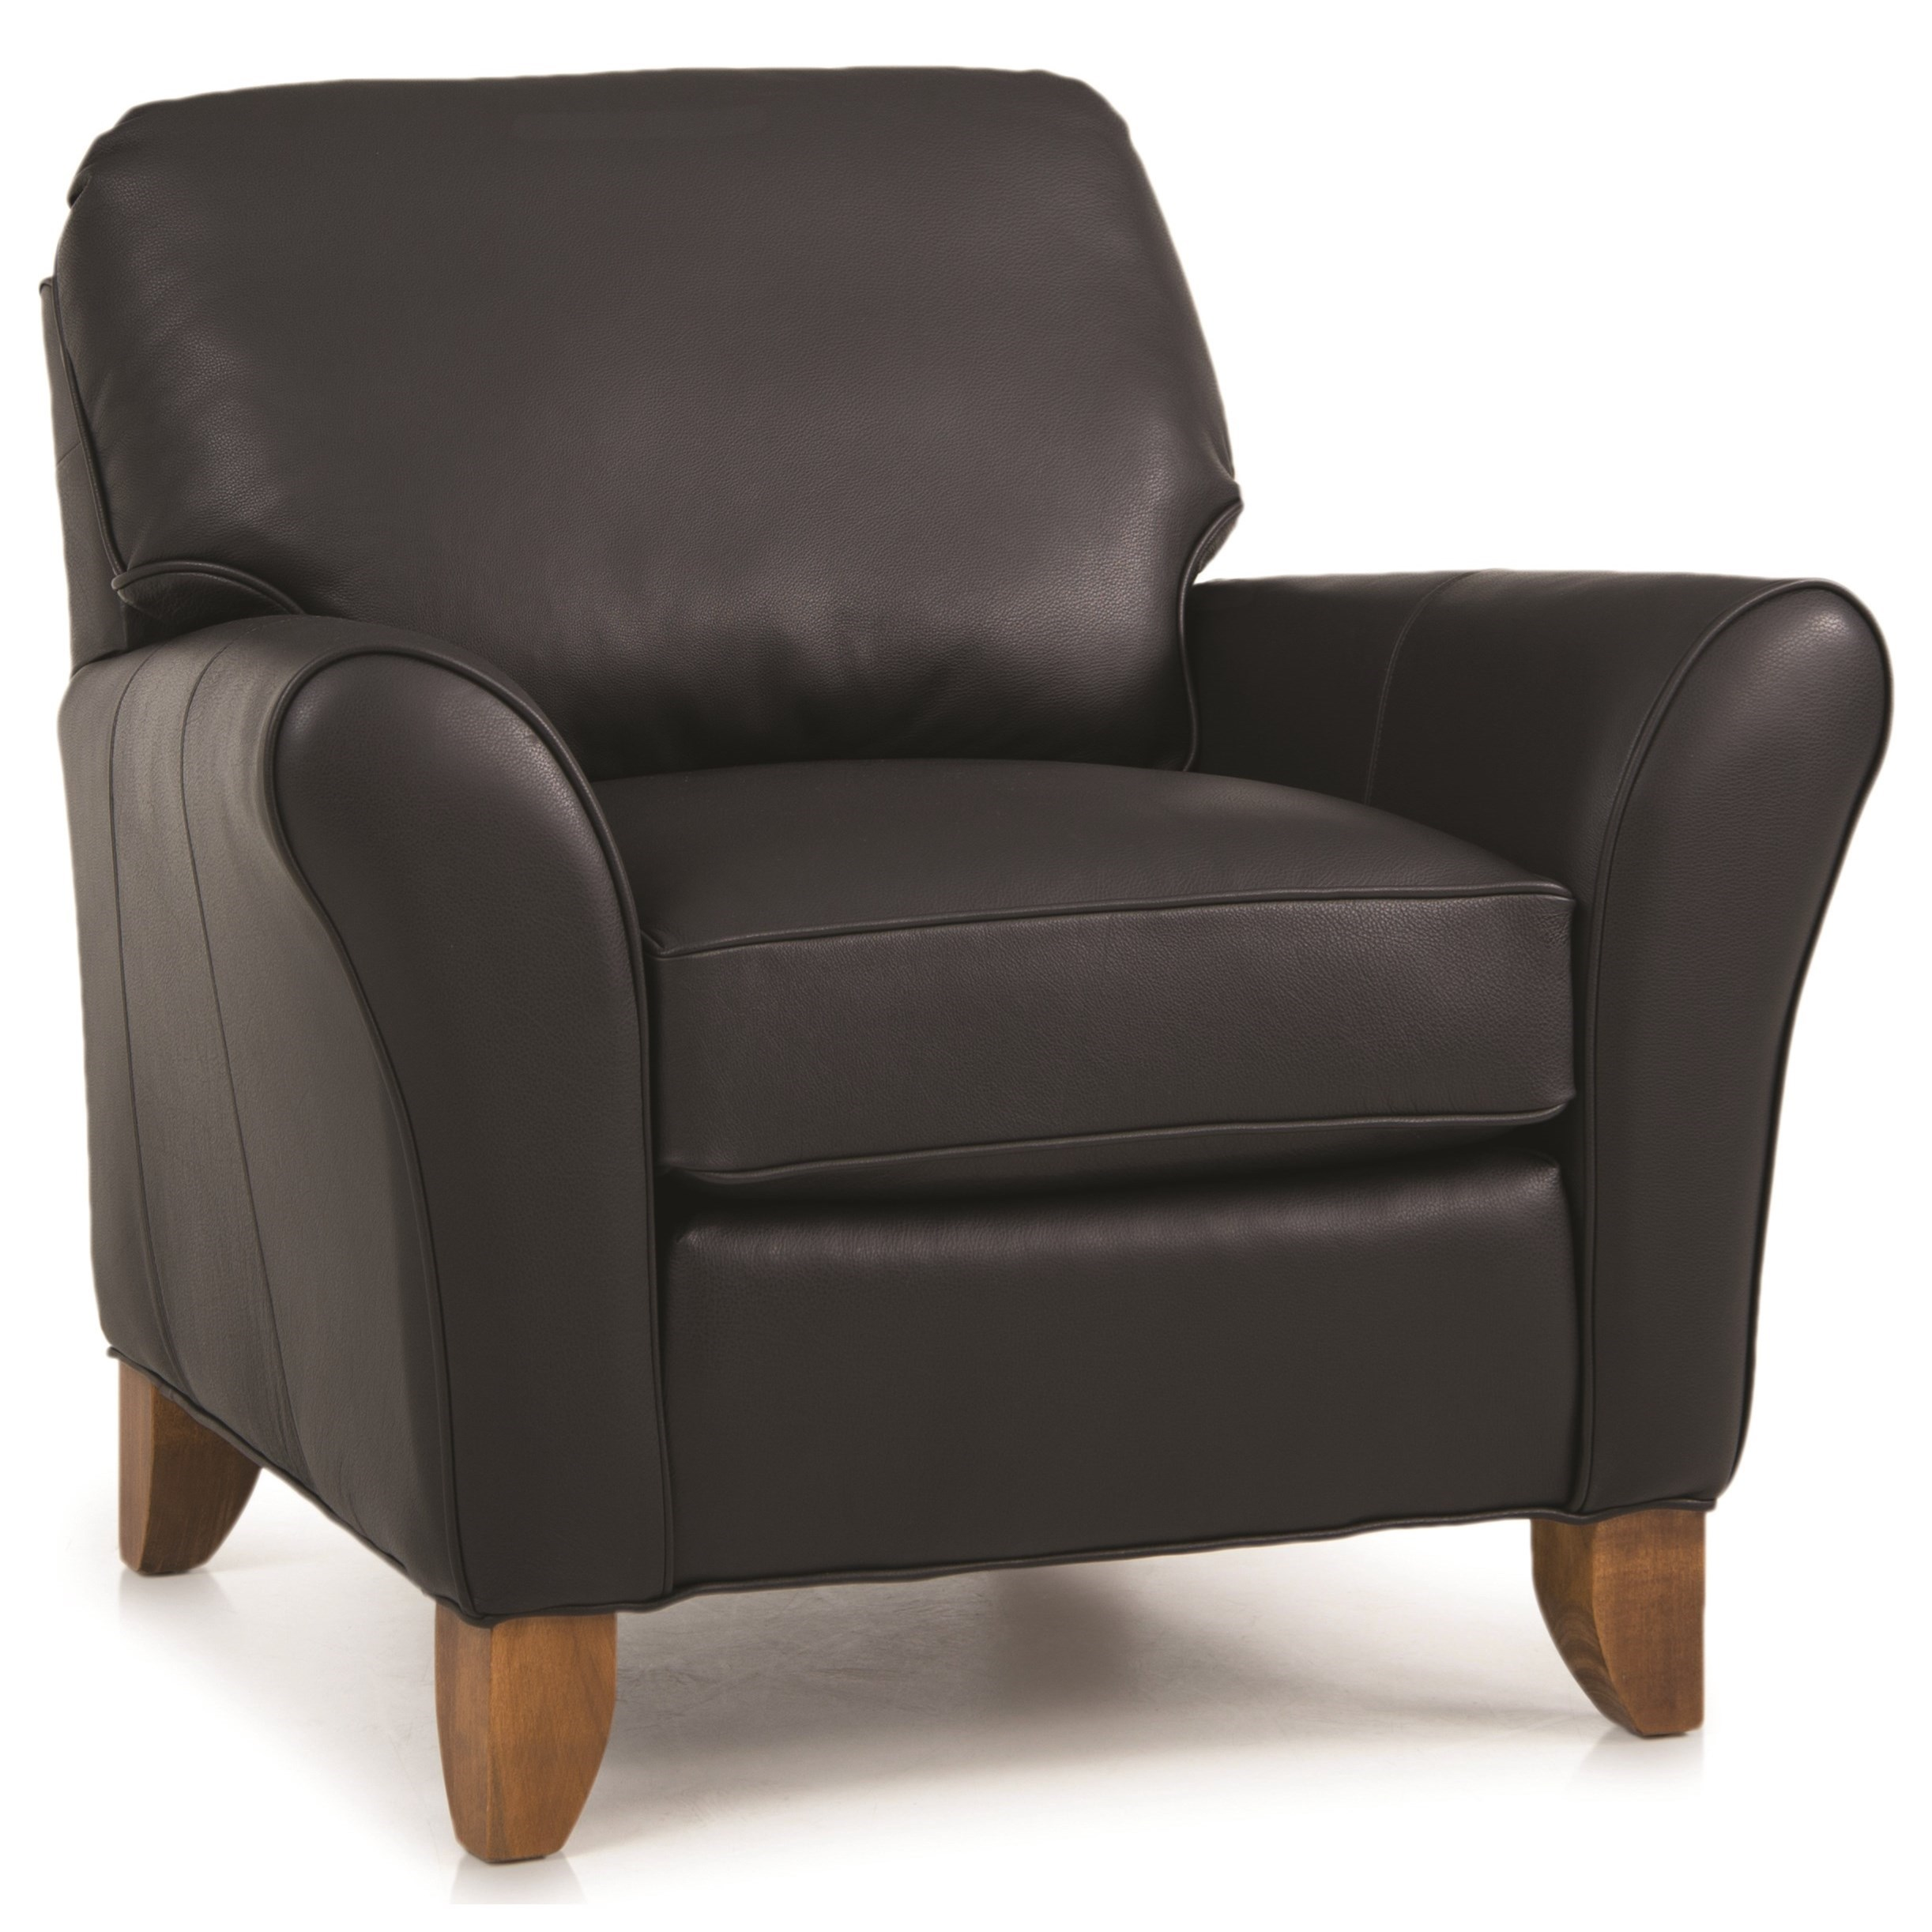 344 L Upholstered Chair by Smith Brothers at Turk Furniture